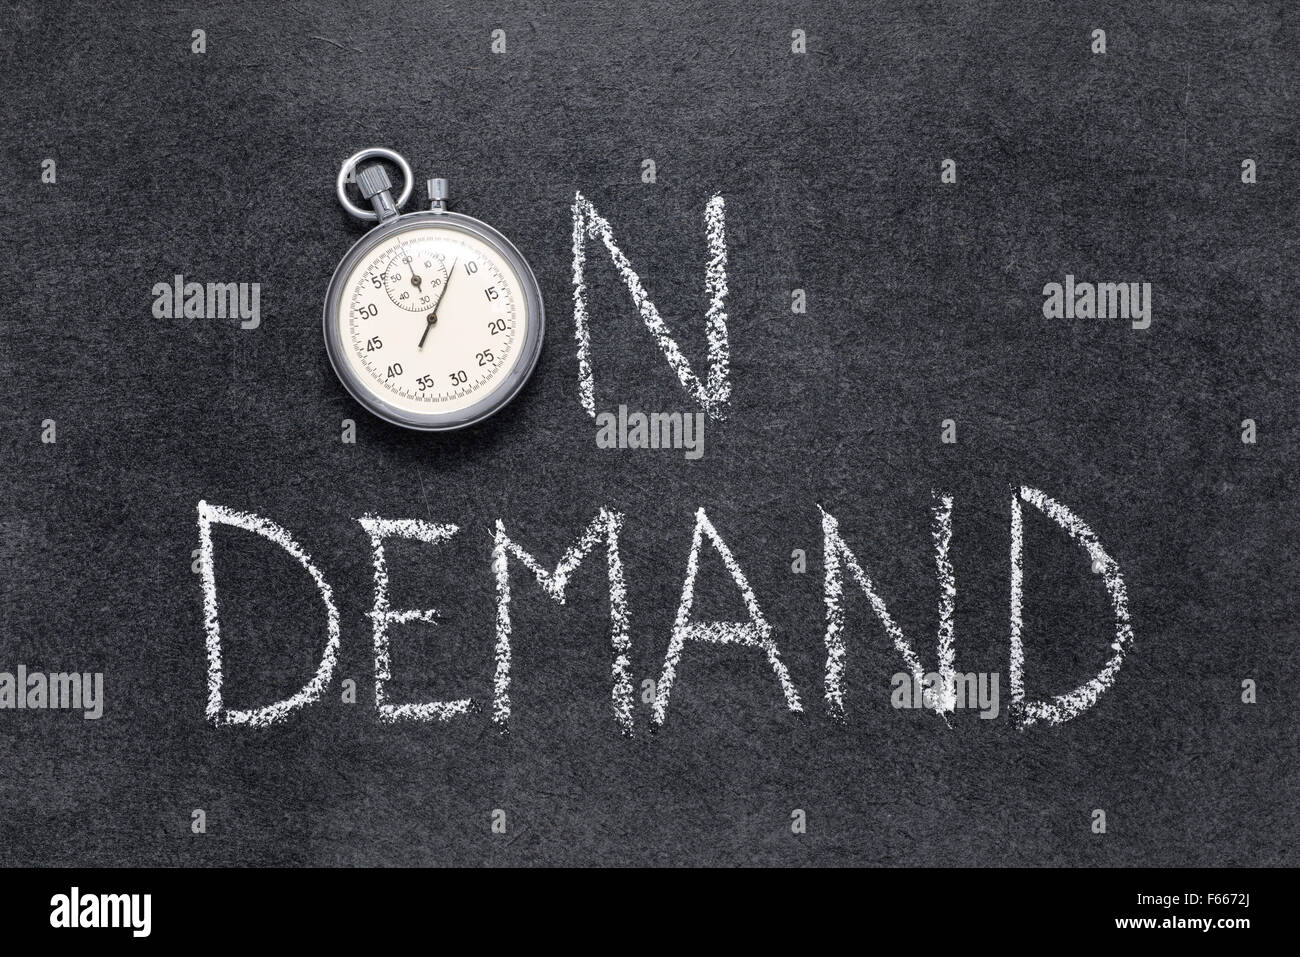 on demand phrase handwritten on chalkboard with vintage precise stopwatch used instead of O - Stock Image